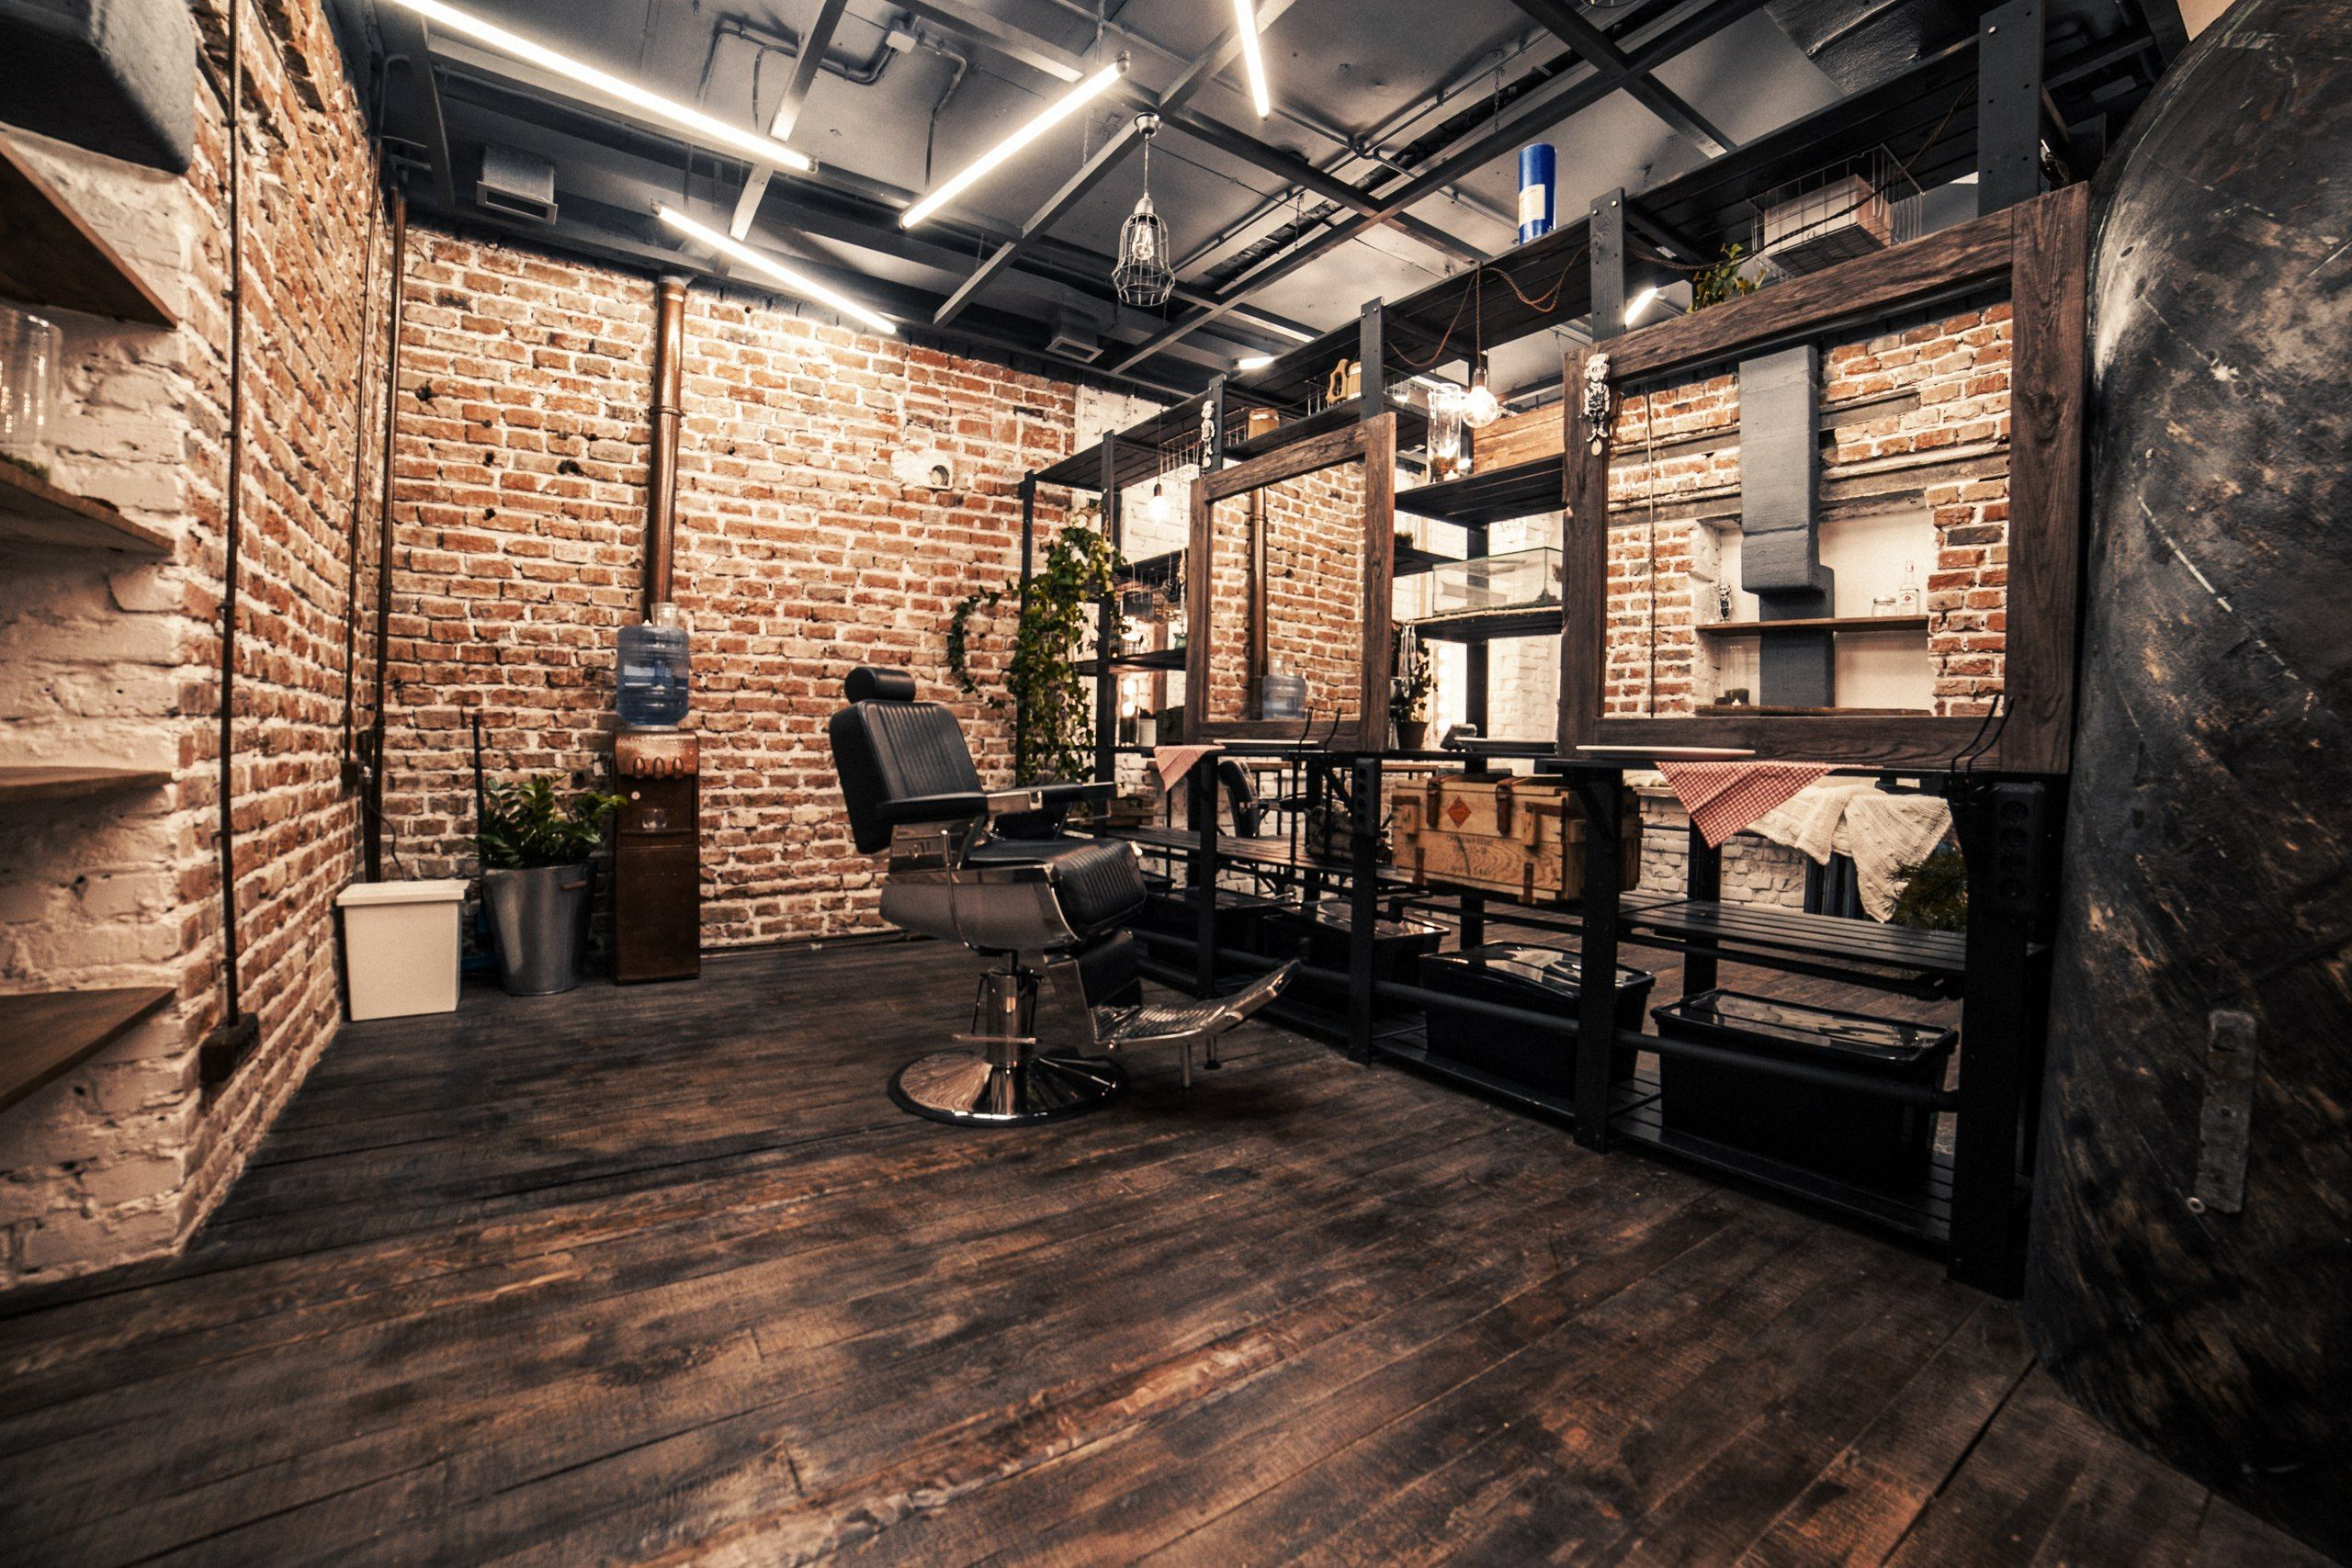 loft interior barbershop beautyshop style haircuts. Black Bedroom Furniture Sets. Home Design Ideas